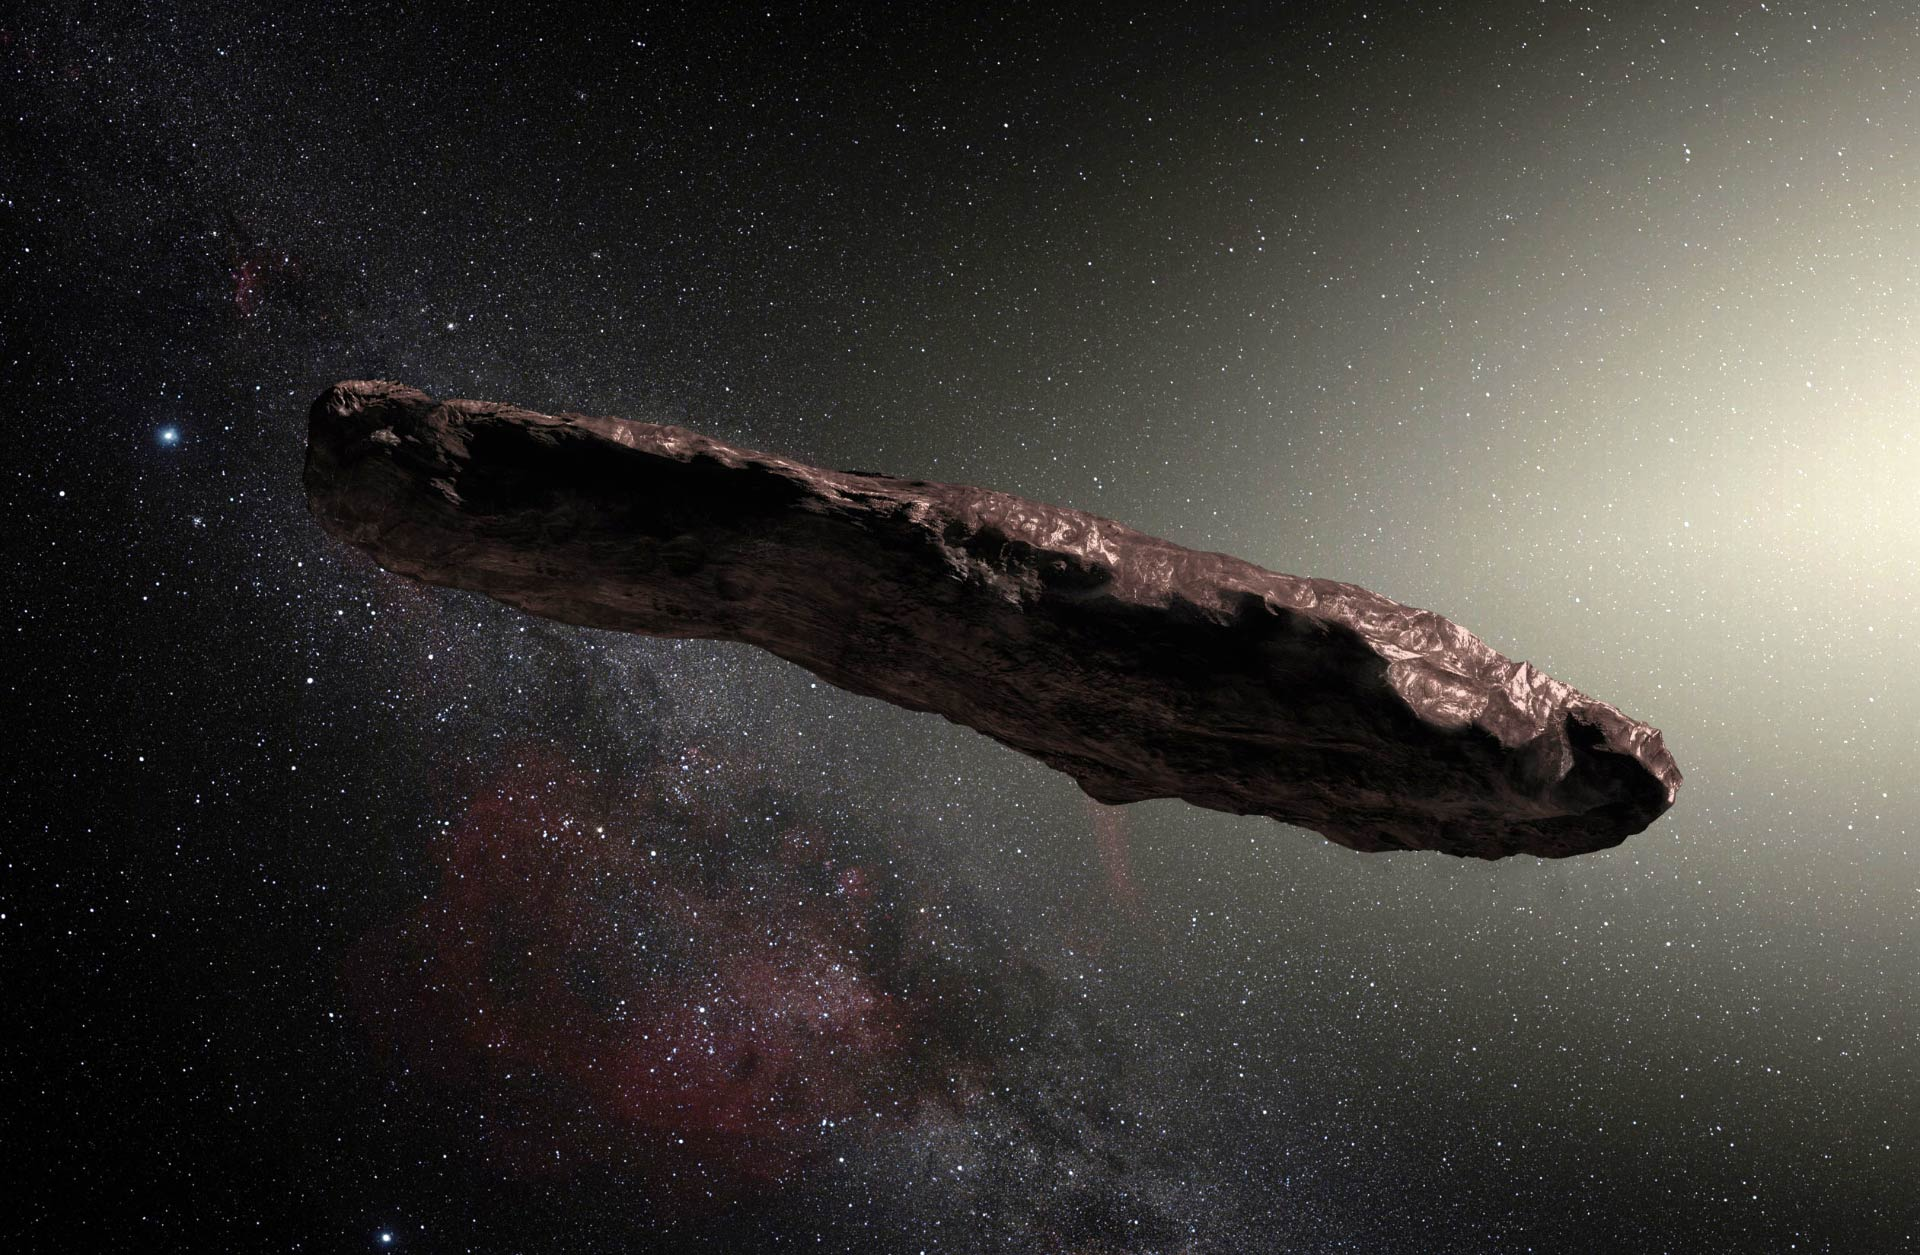 New Study Reveals More About Mysterious 'Oumuamua Interstellar Asteroid